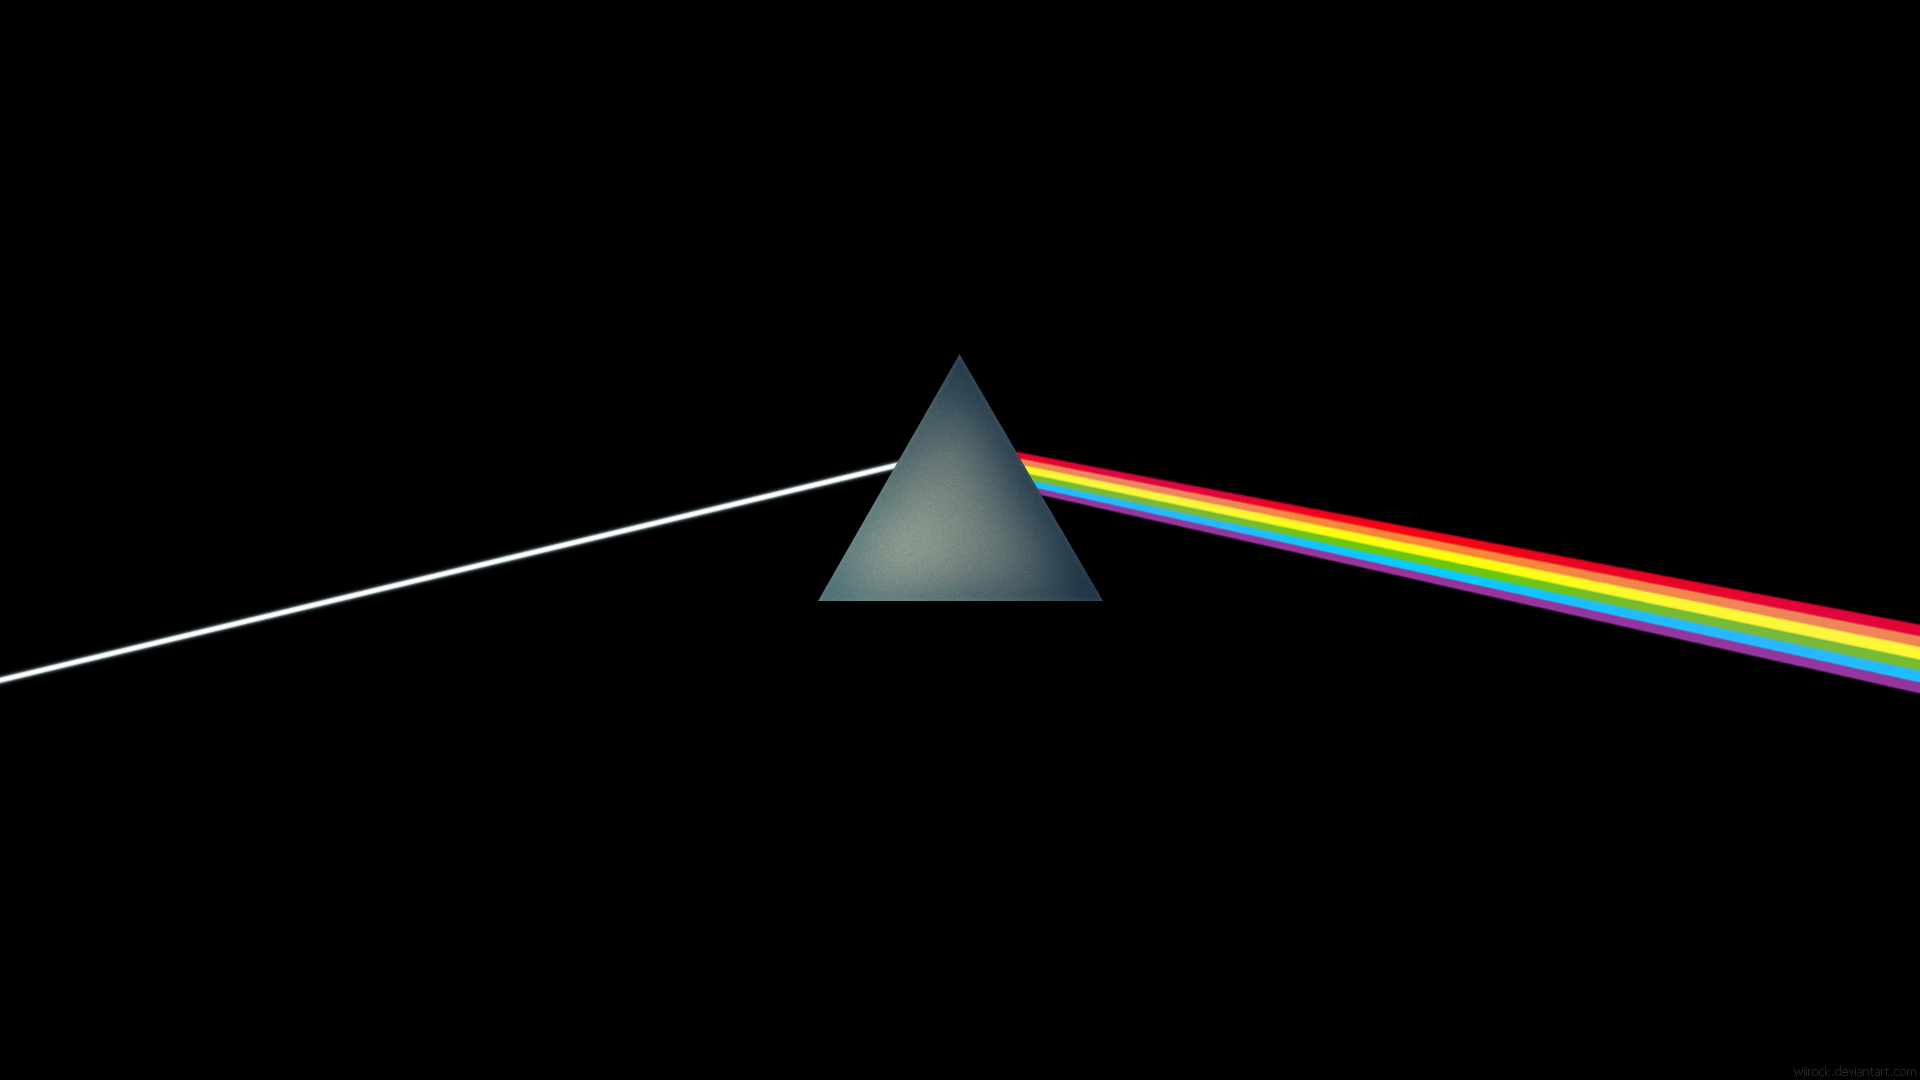 Download Pink Floyd Wallpapers 1920x1080